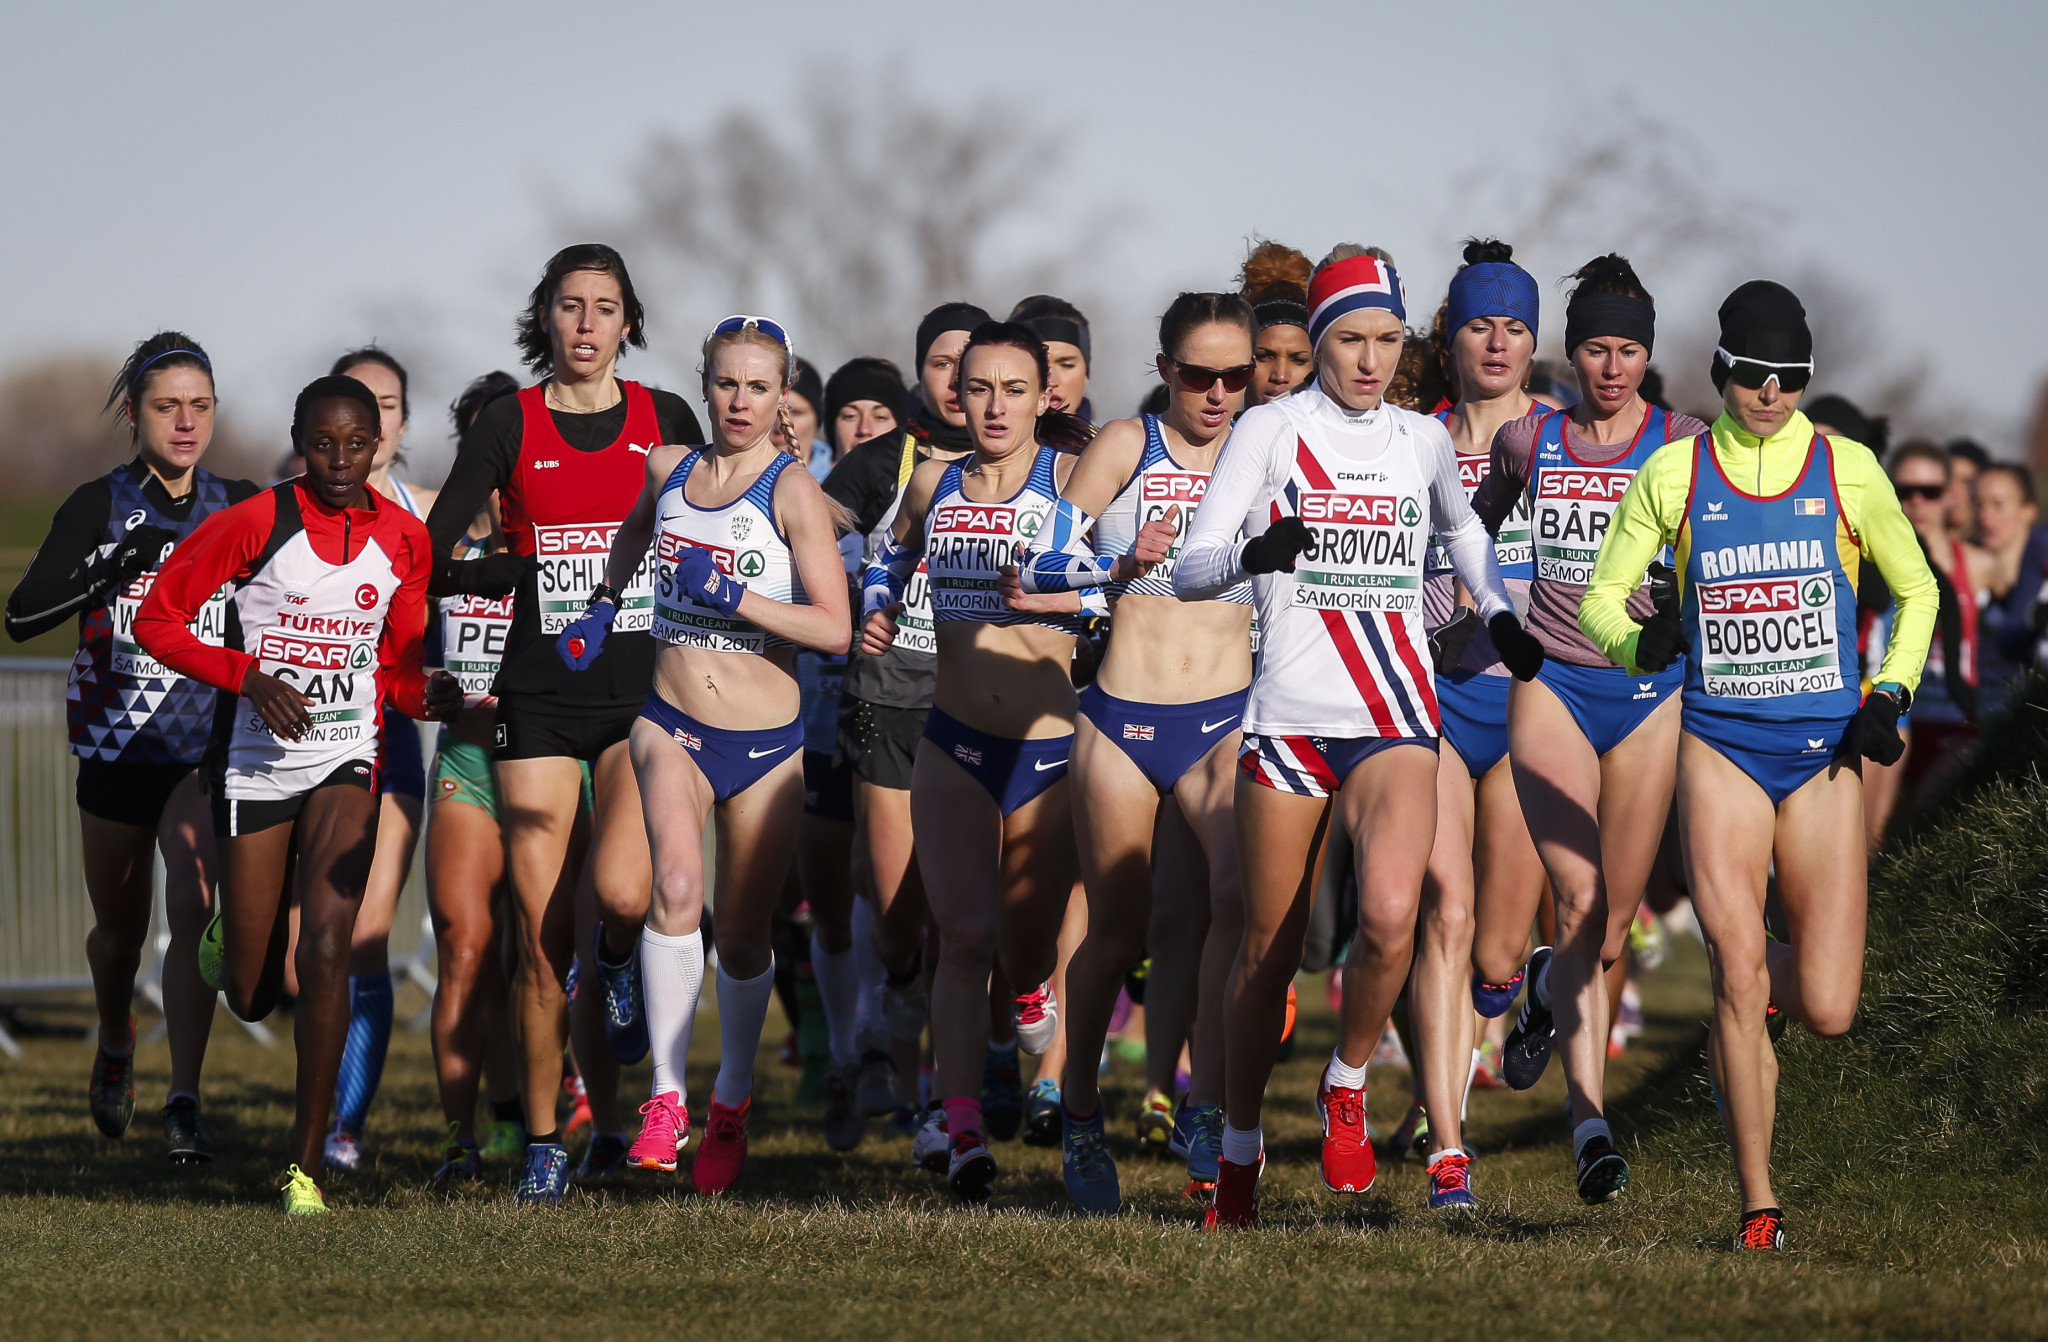 Cross-country running has long been suggested as a Winter Olympic sport ©Getty Images